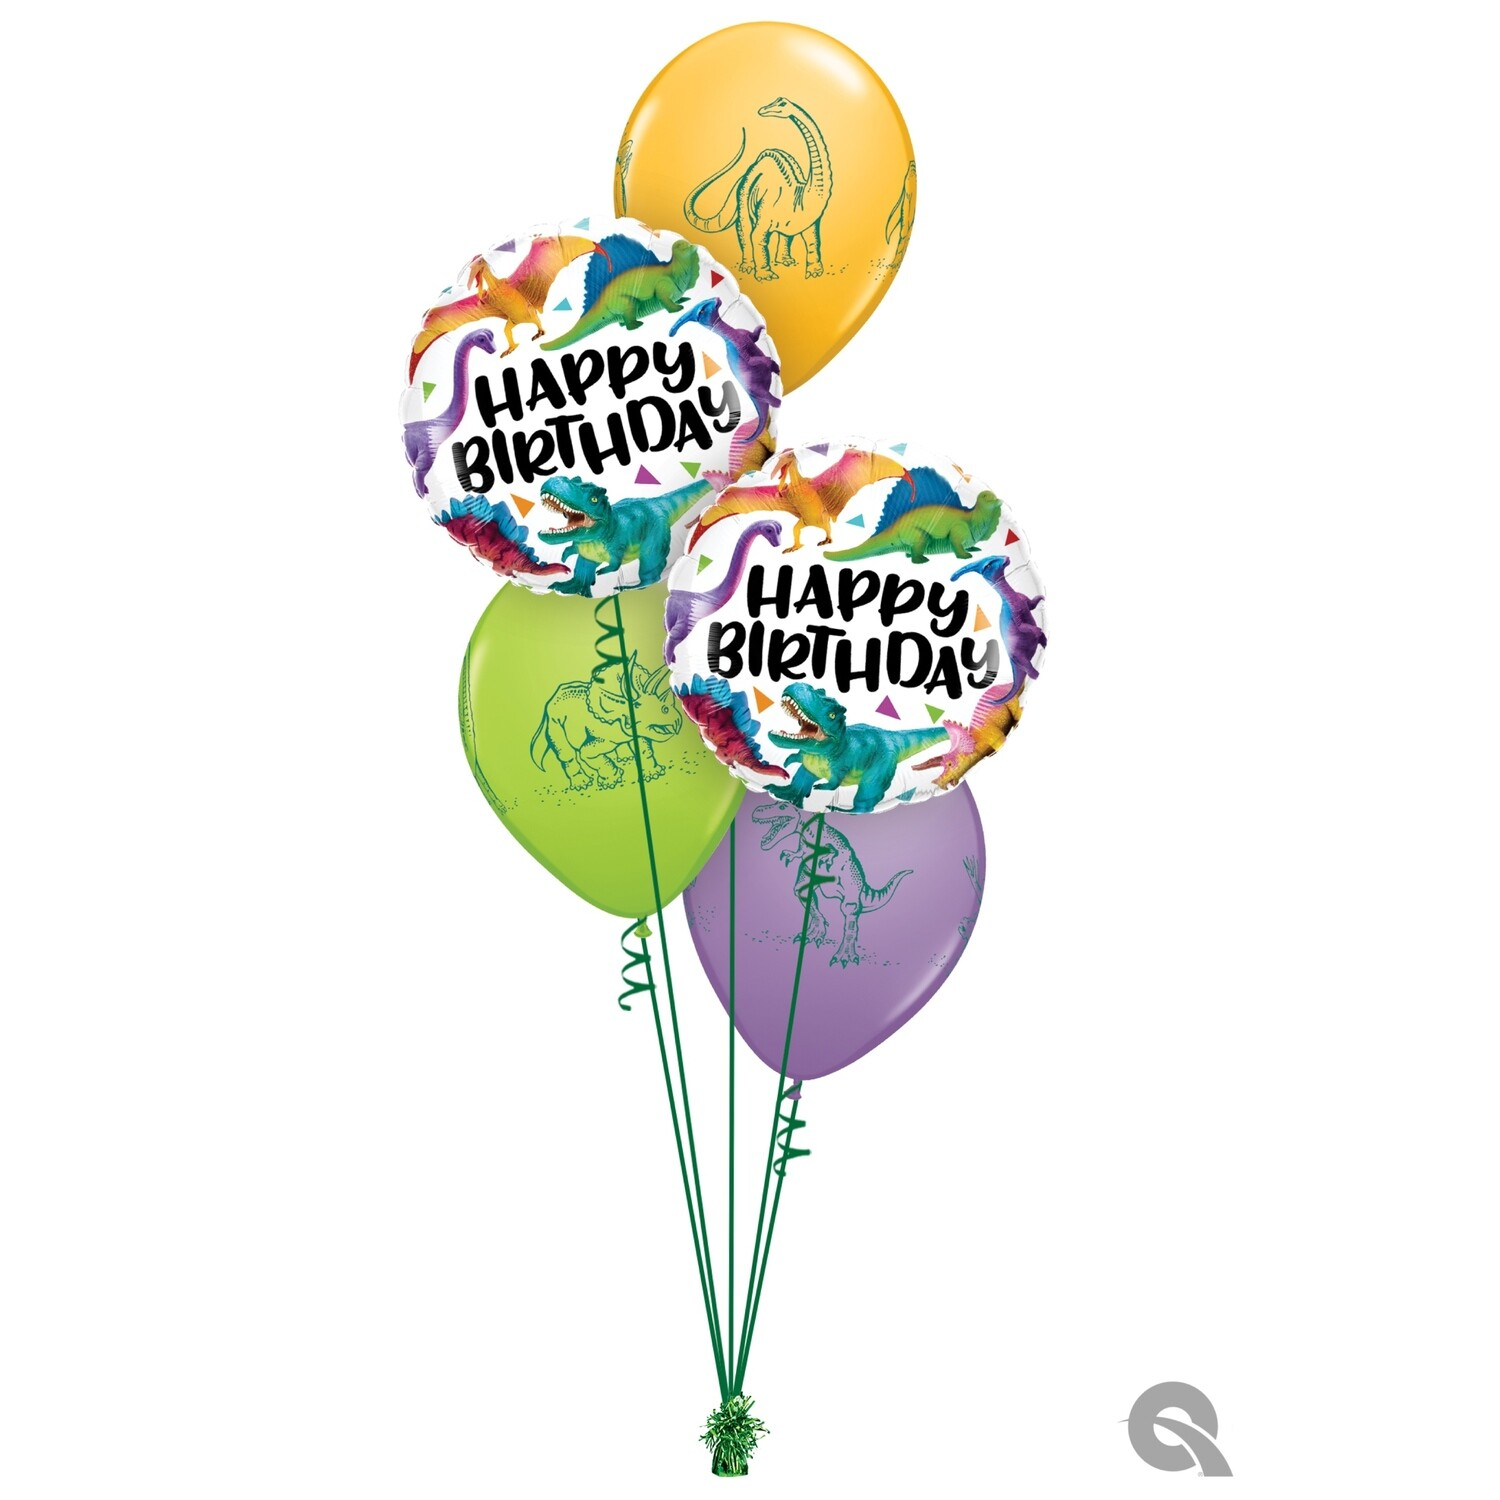 Happy Birthday Dinosaur Balloon Bouquet Design